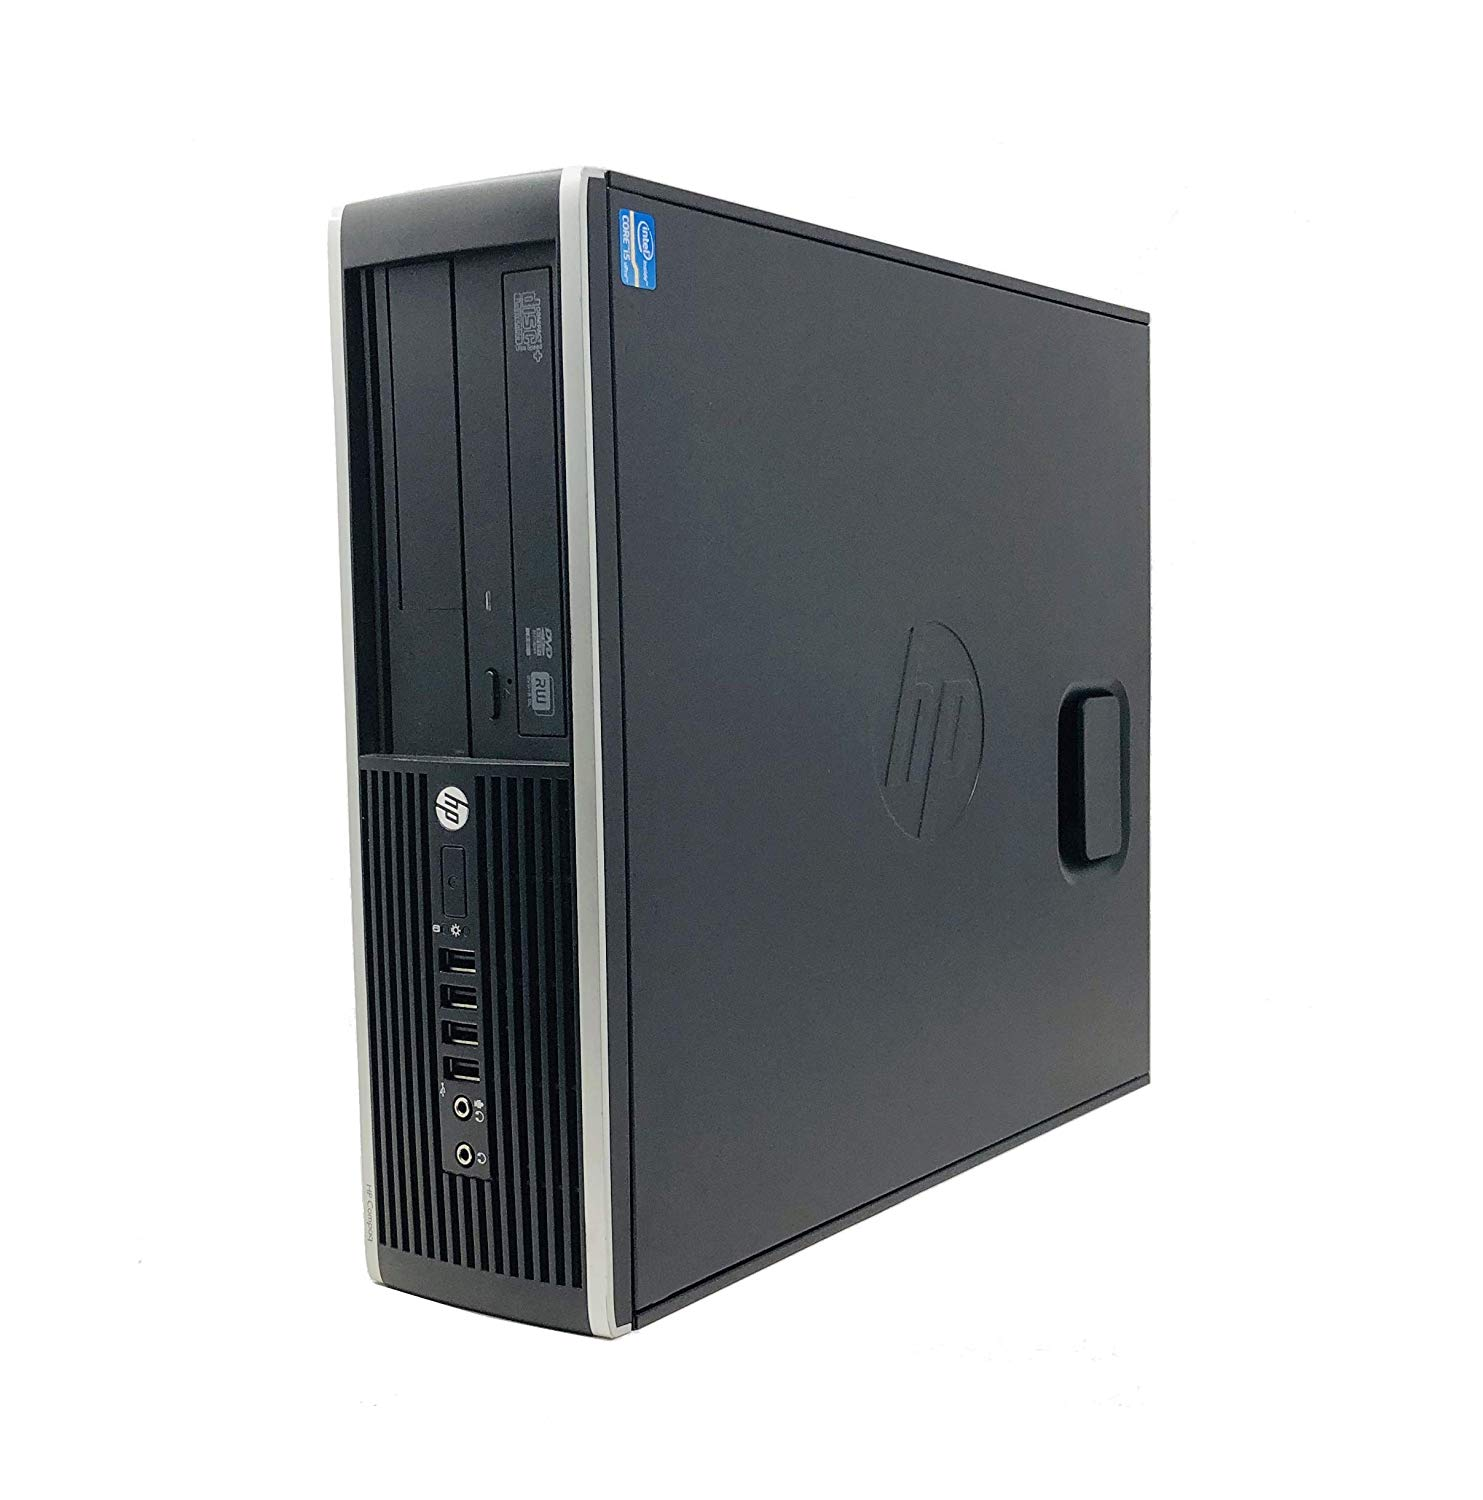 Hp Elite 8200 - Ordenador De Sobremesa (Intel  I5-2400, 8GB RAM, Disco SSD De 240GB , Windows 10 PRO ) - Negro (Reacondicionado)